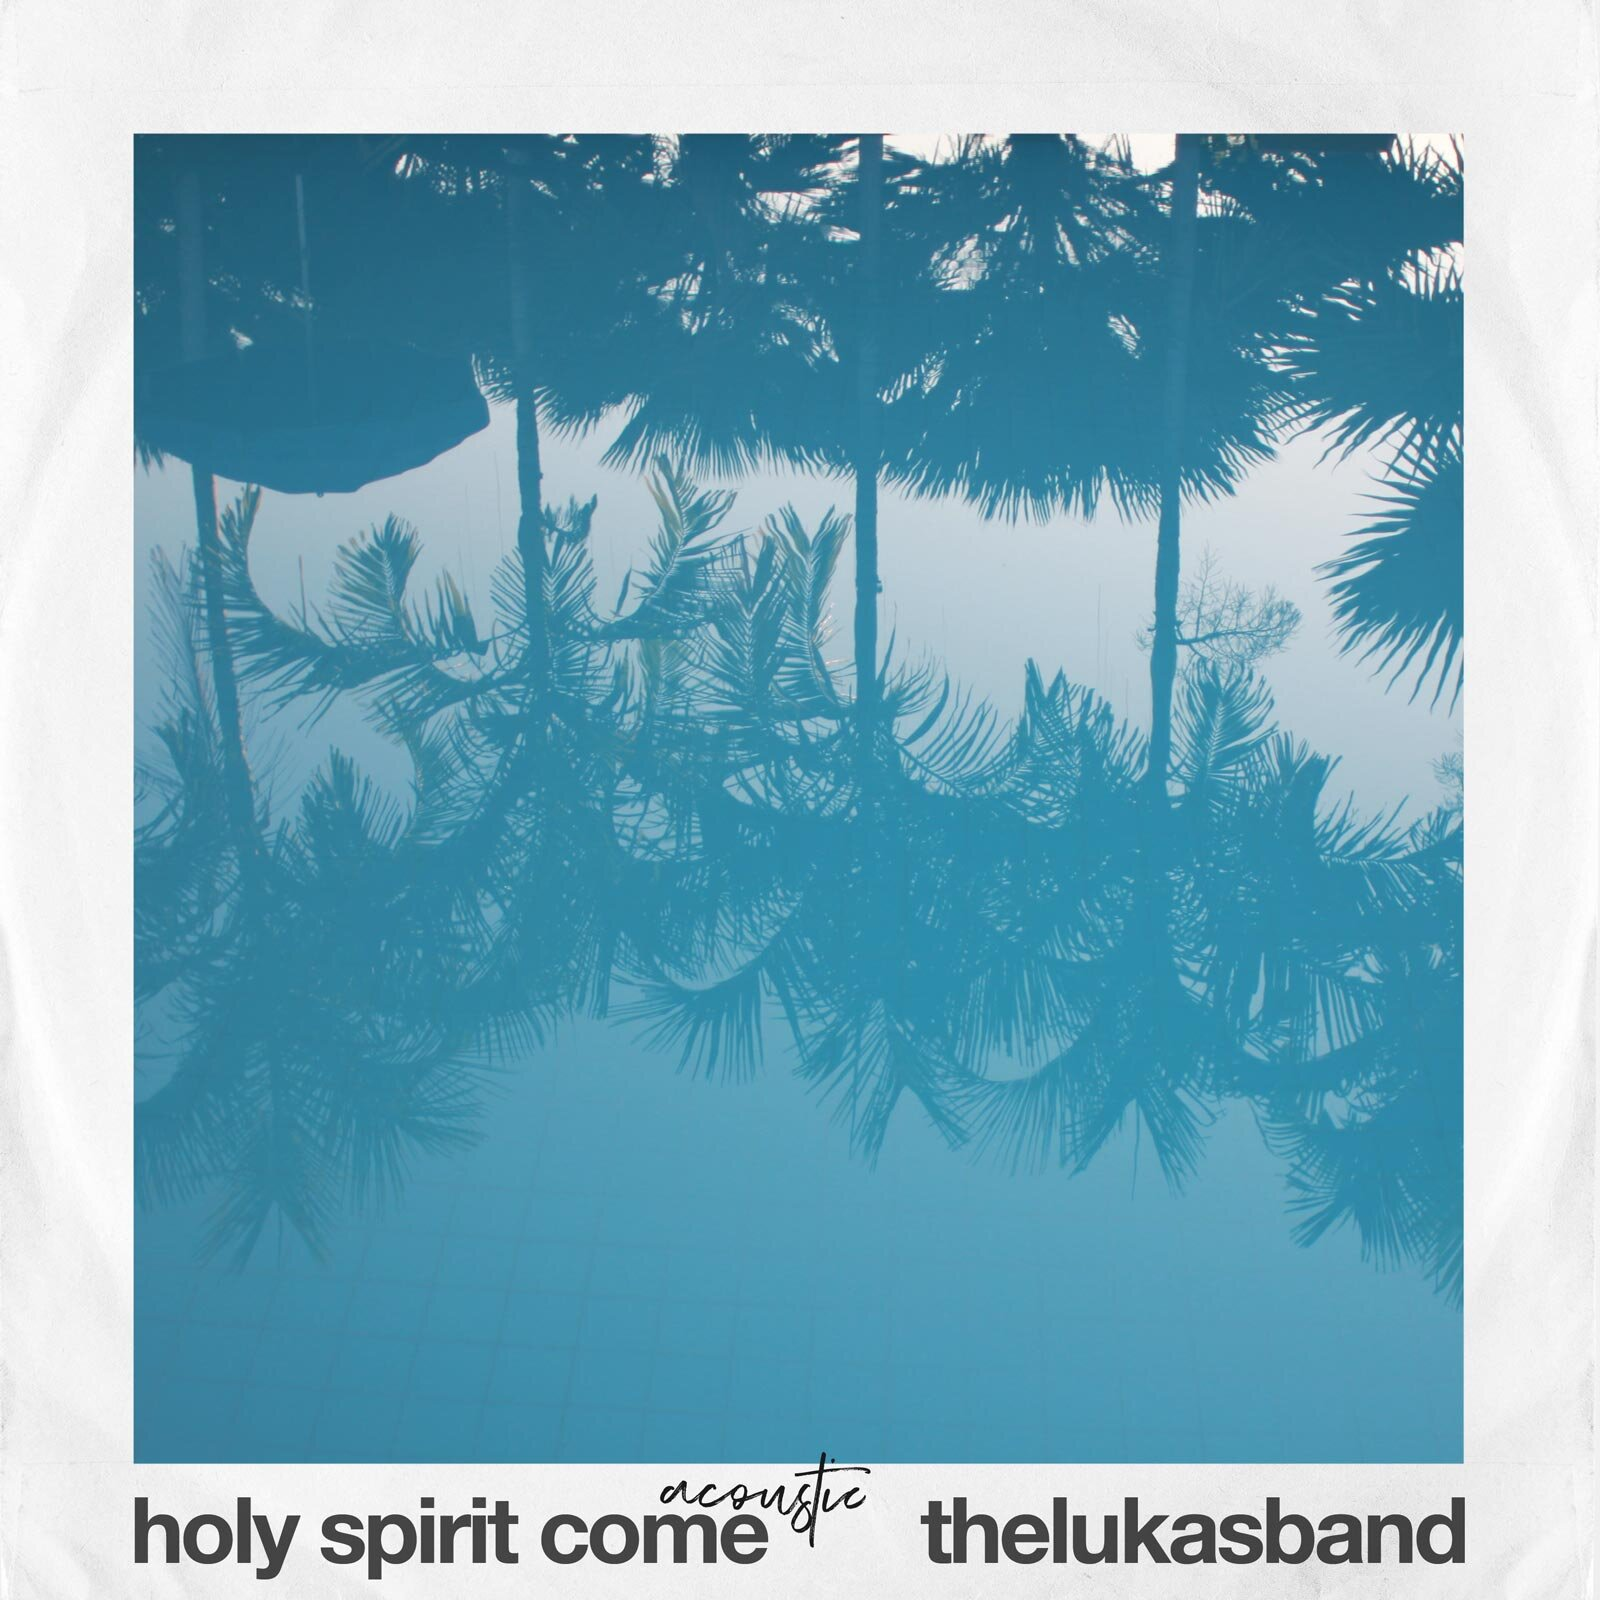 thelukasband-holy-spirit-come-cover-acoustic.jpg